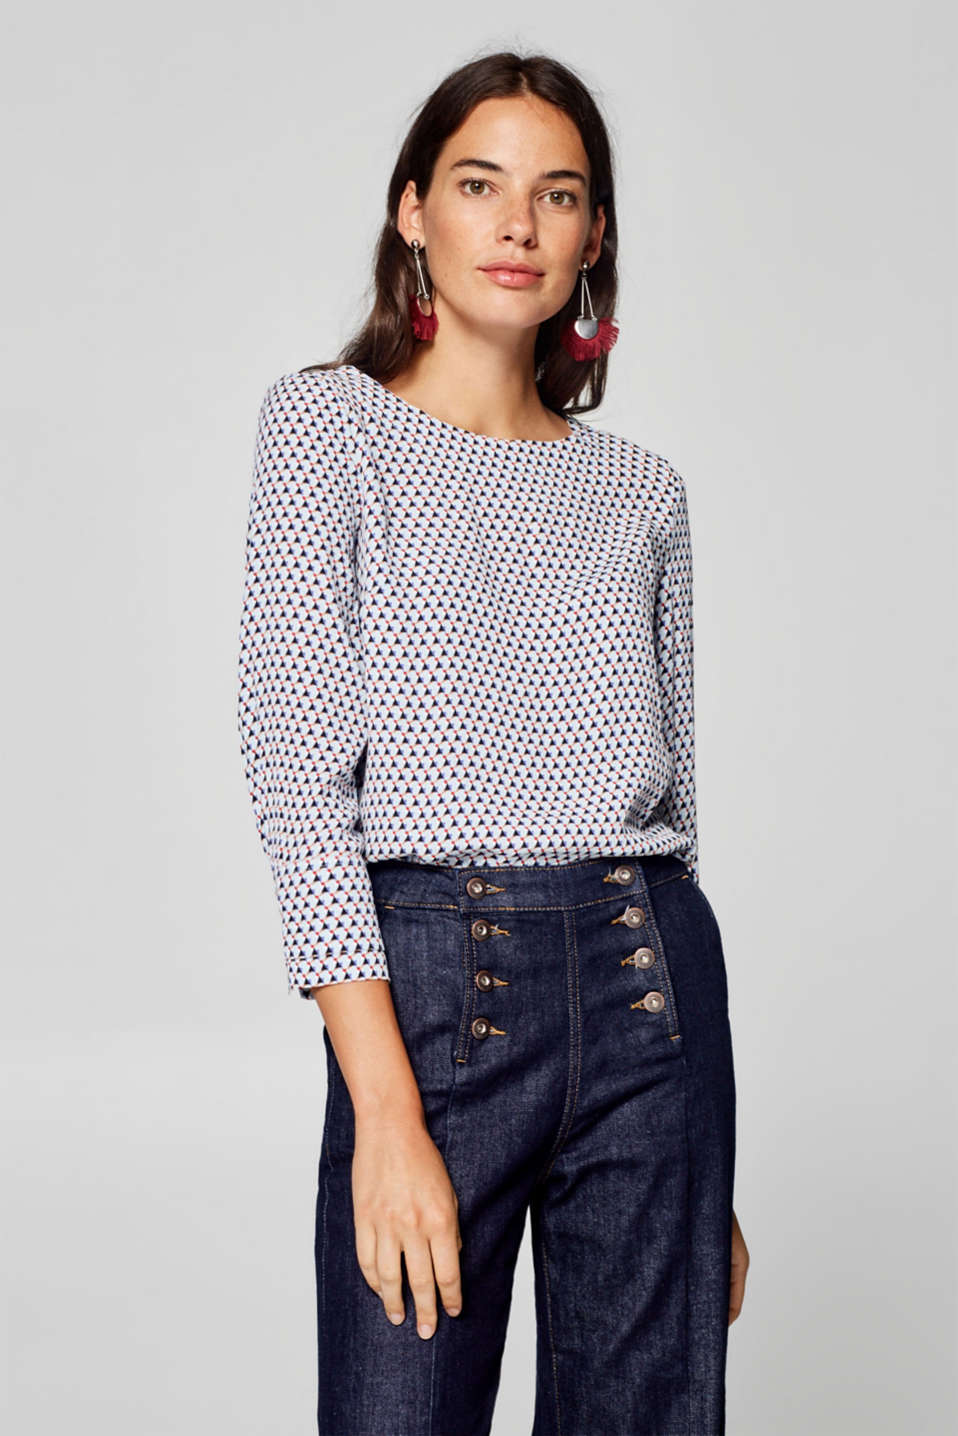 Esprit - Printed blouse with a button placket at the back